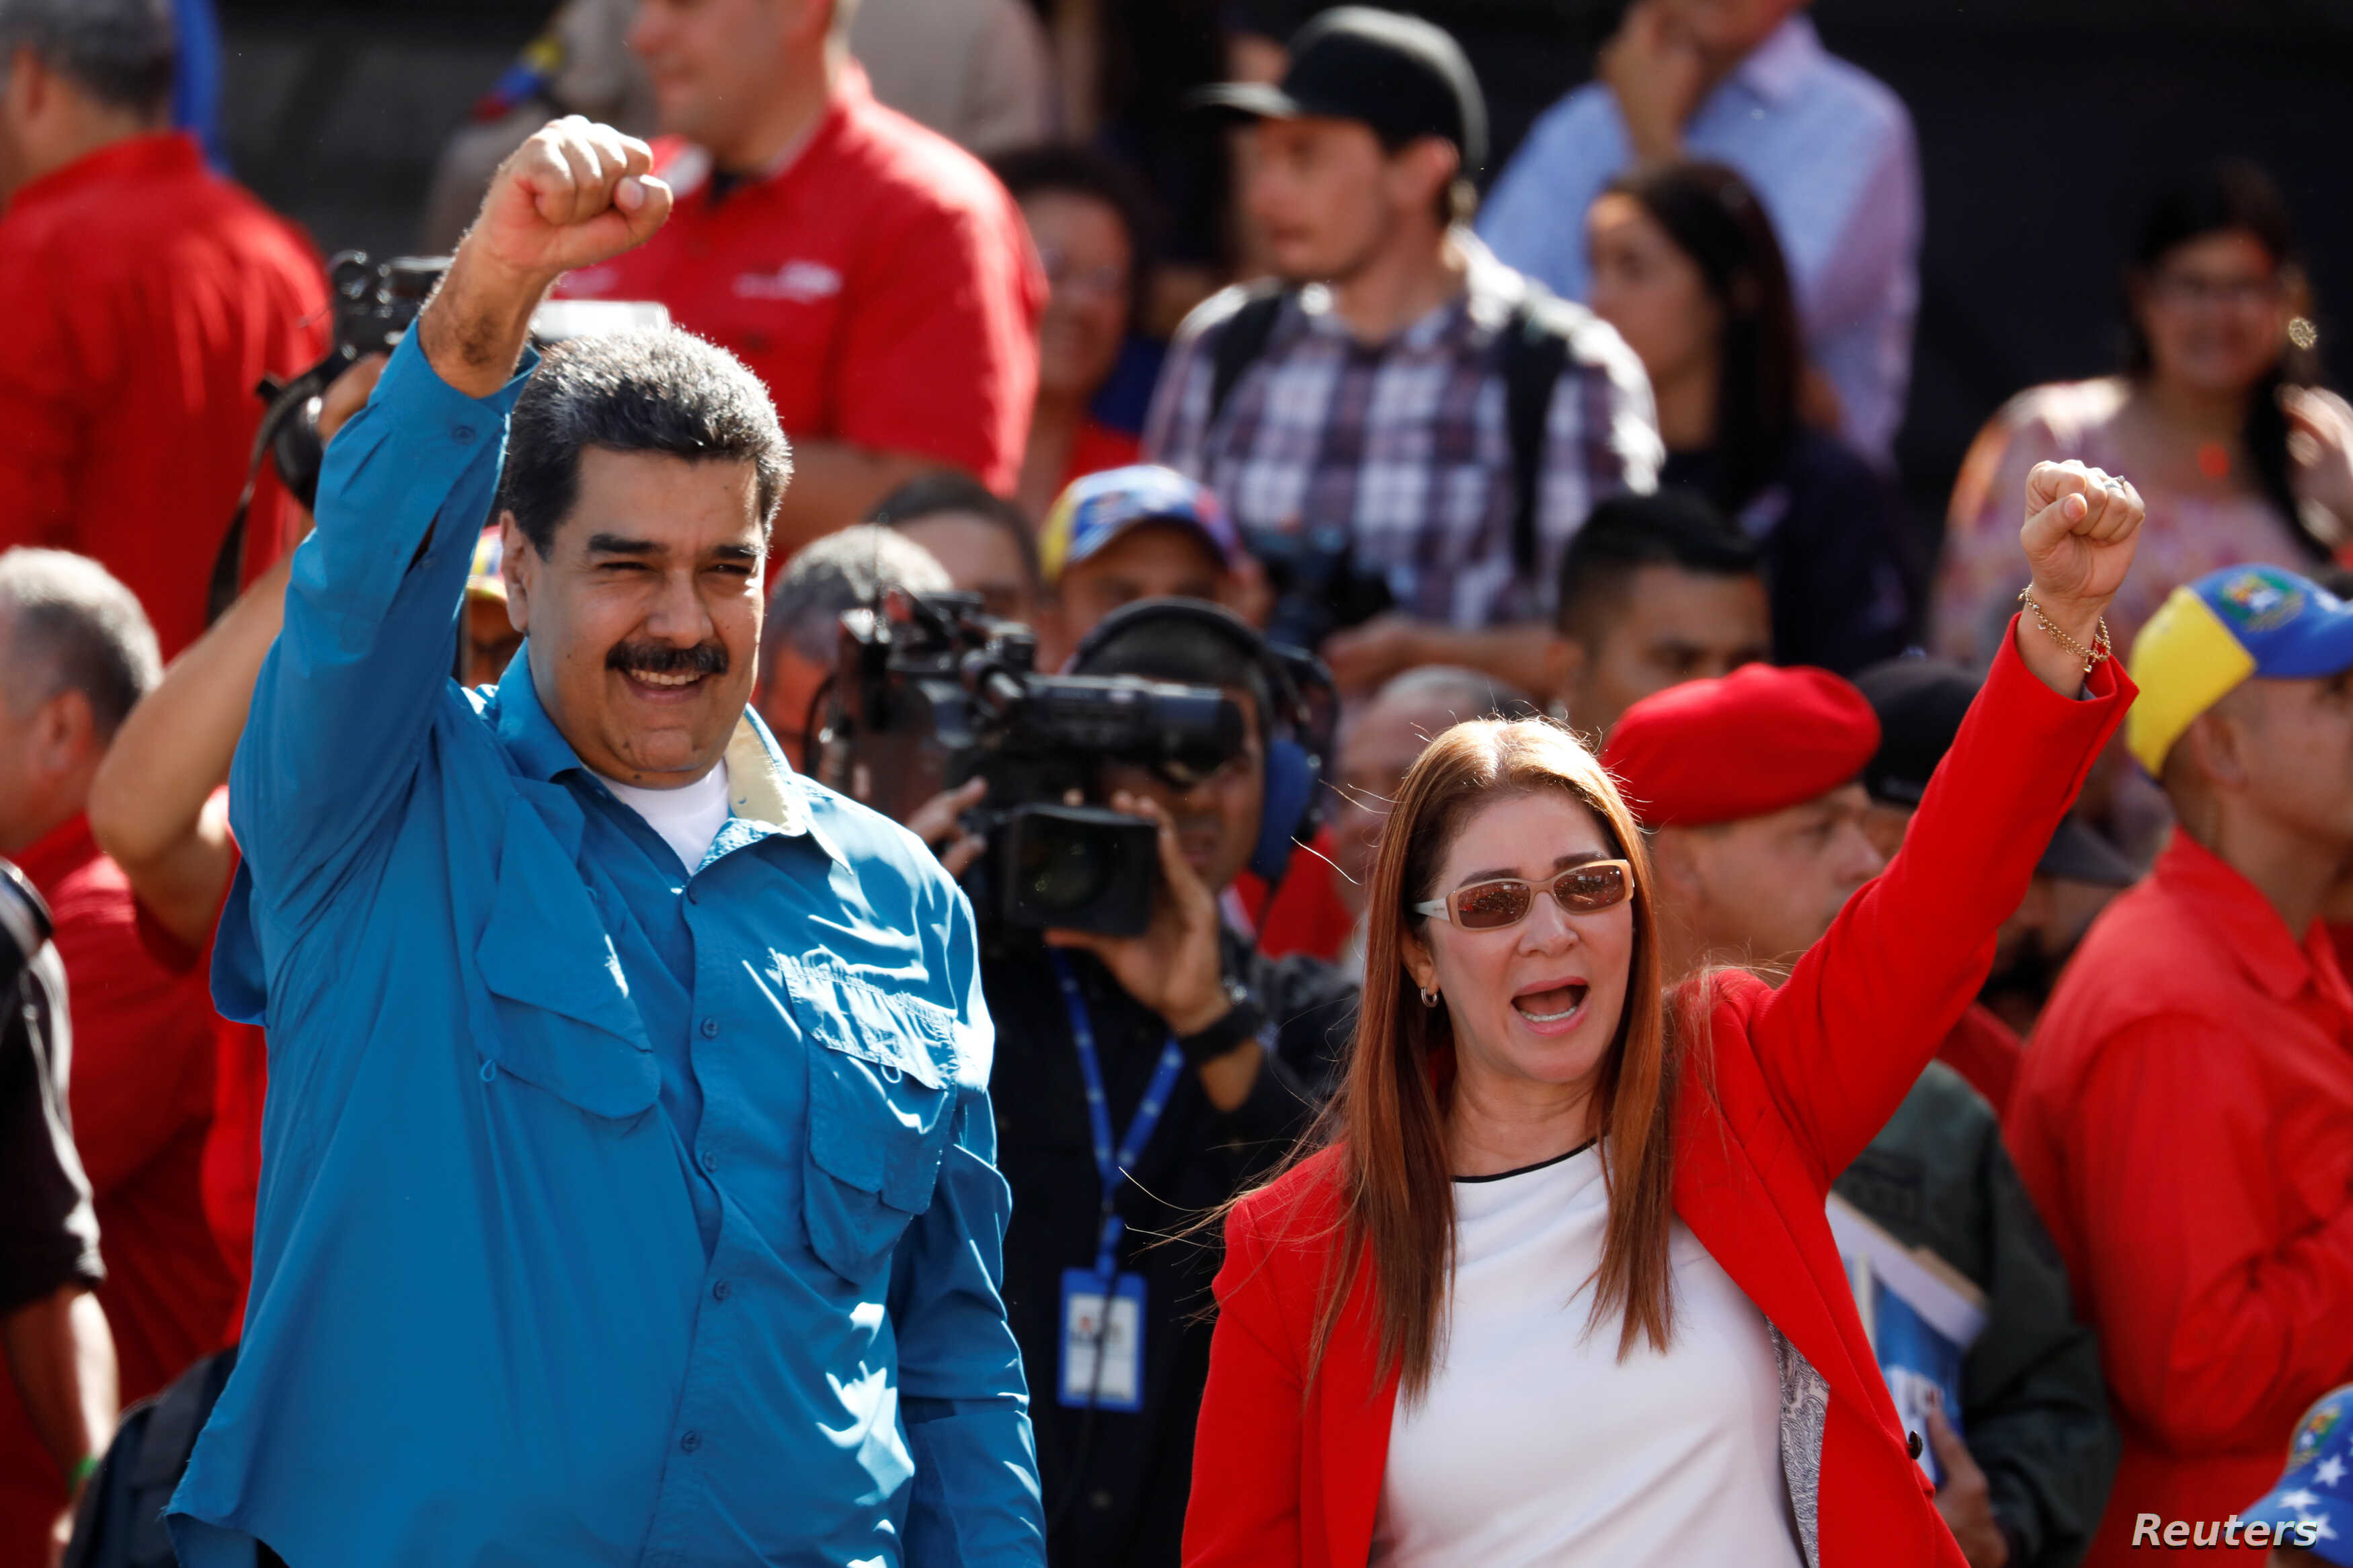 Venezuela's President Nicolas Maduro and his wife, Cilia Flores, greet supporters at a rally marking the 60th anniversary of the end of dictator Marcos Perez Jimenez's regime, in Caracas, Jan. 23, 2018.